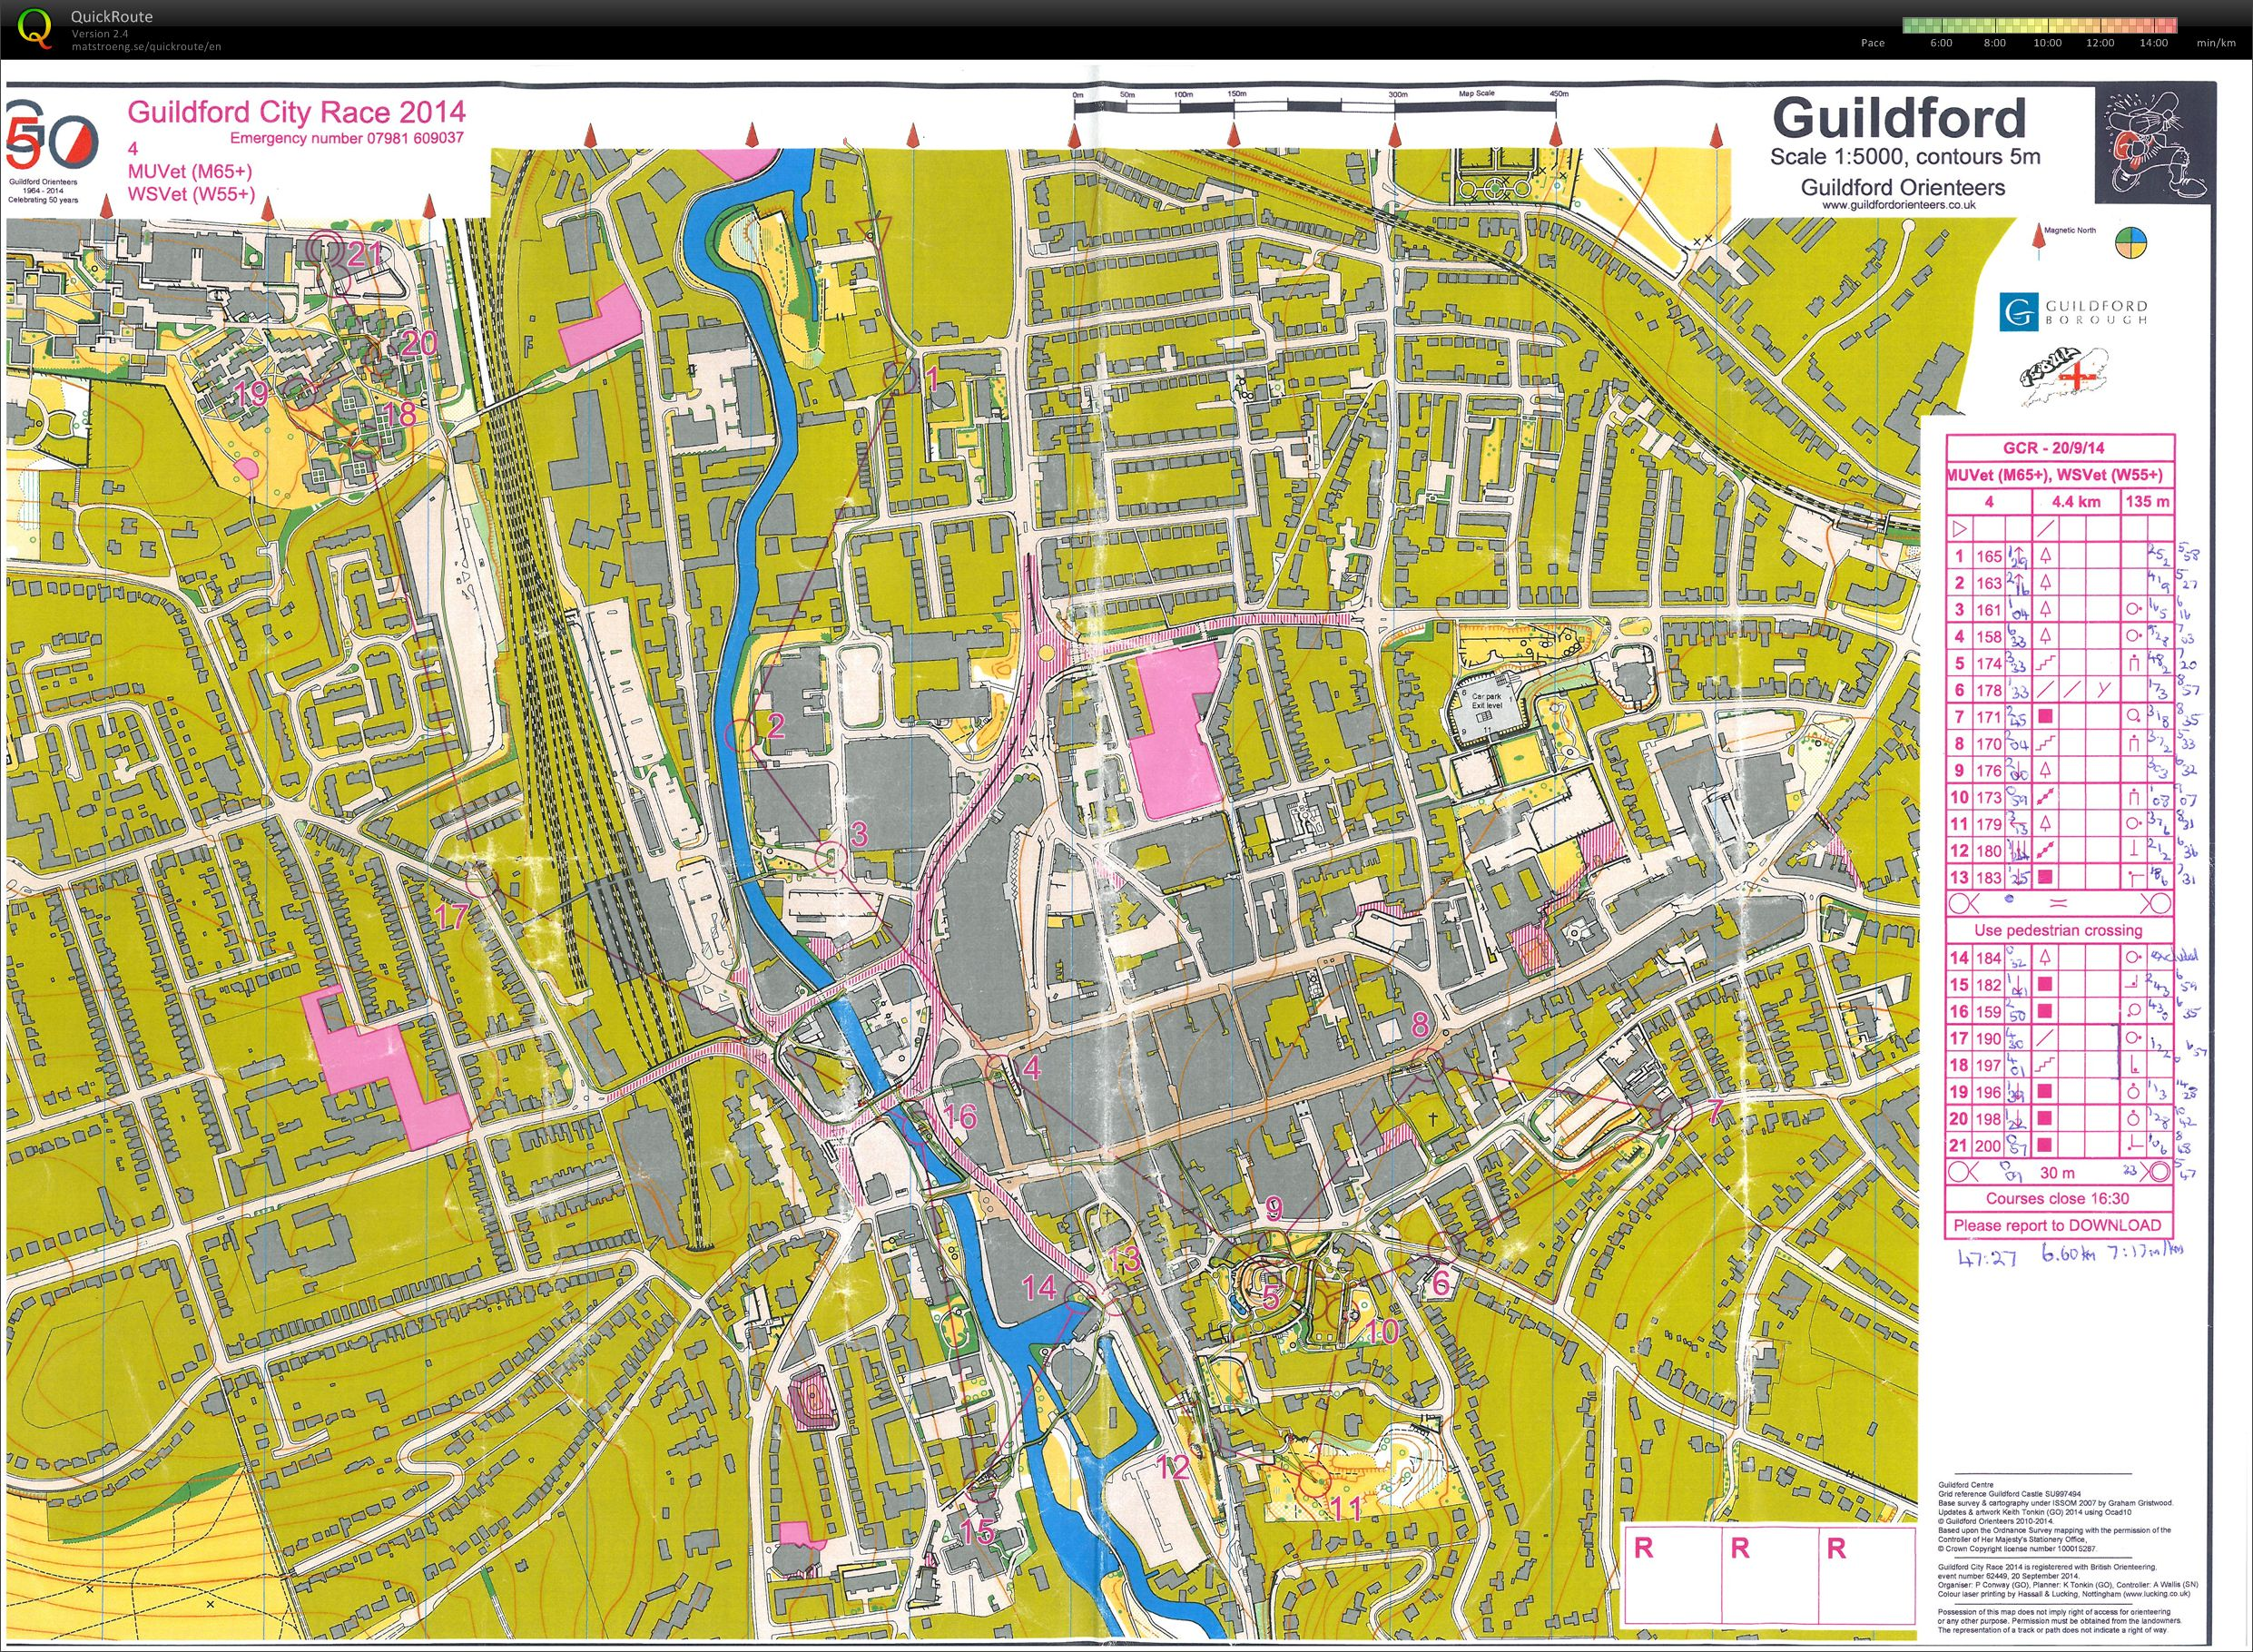 Guildford Urban Race (20-09-2014)